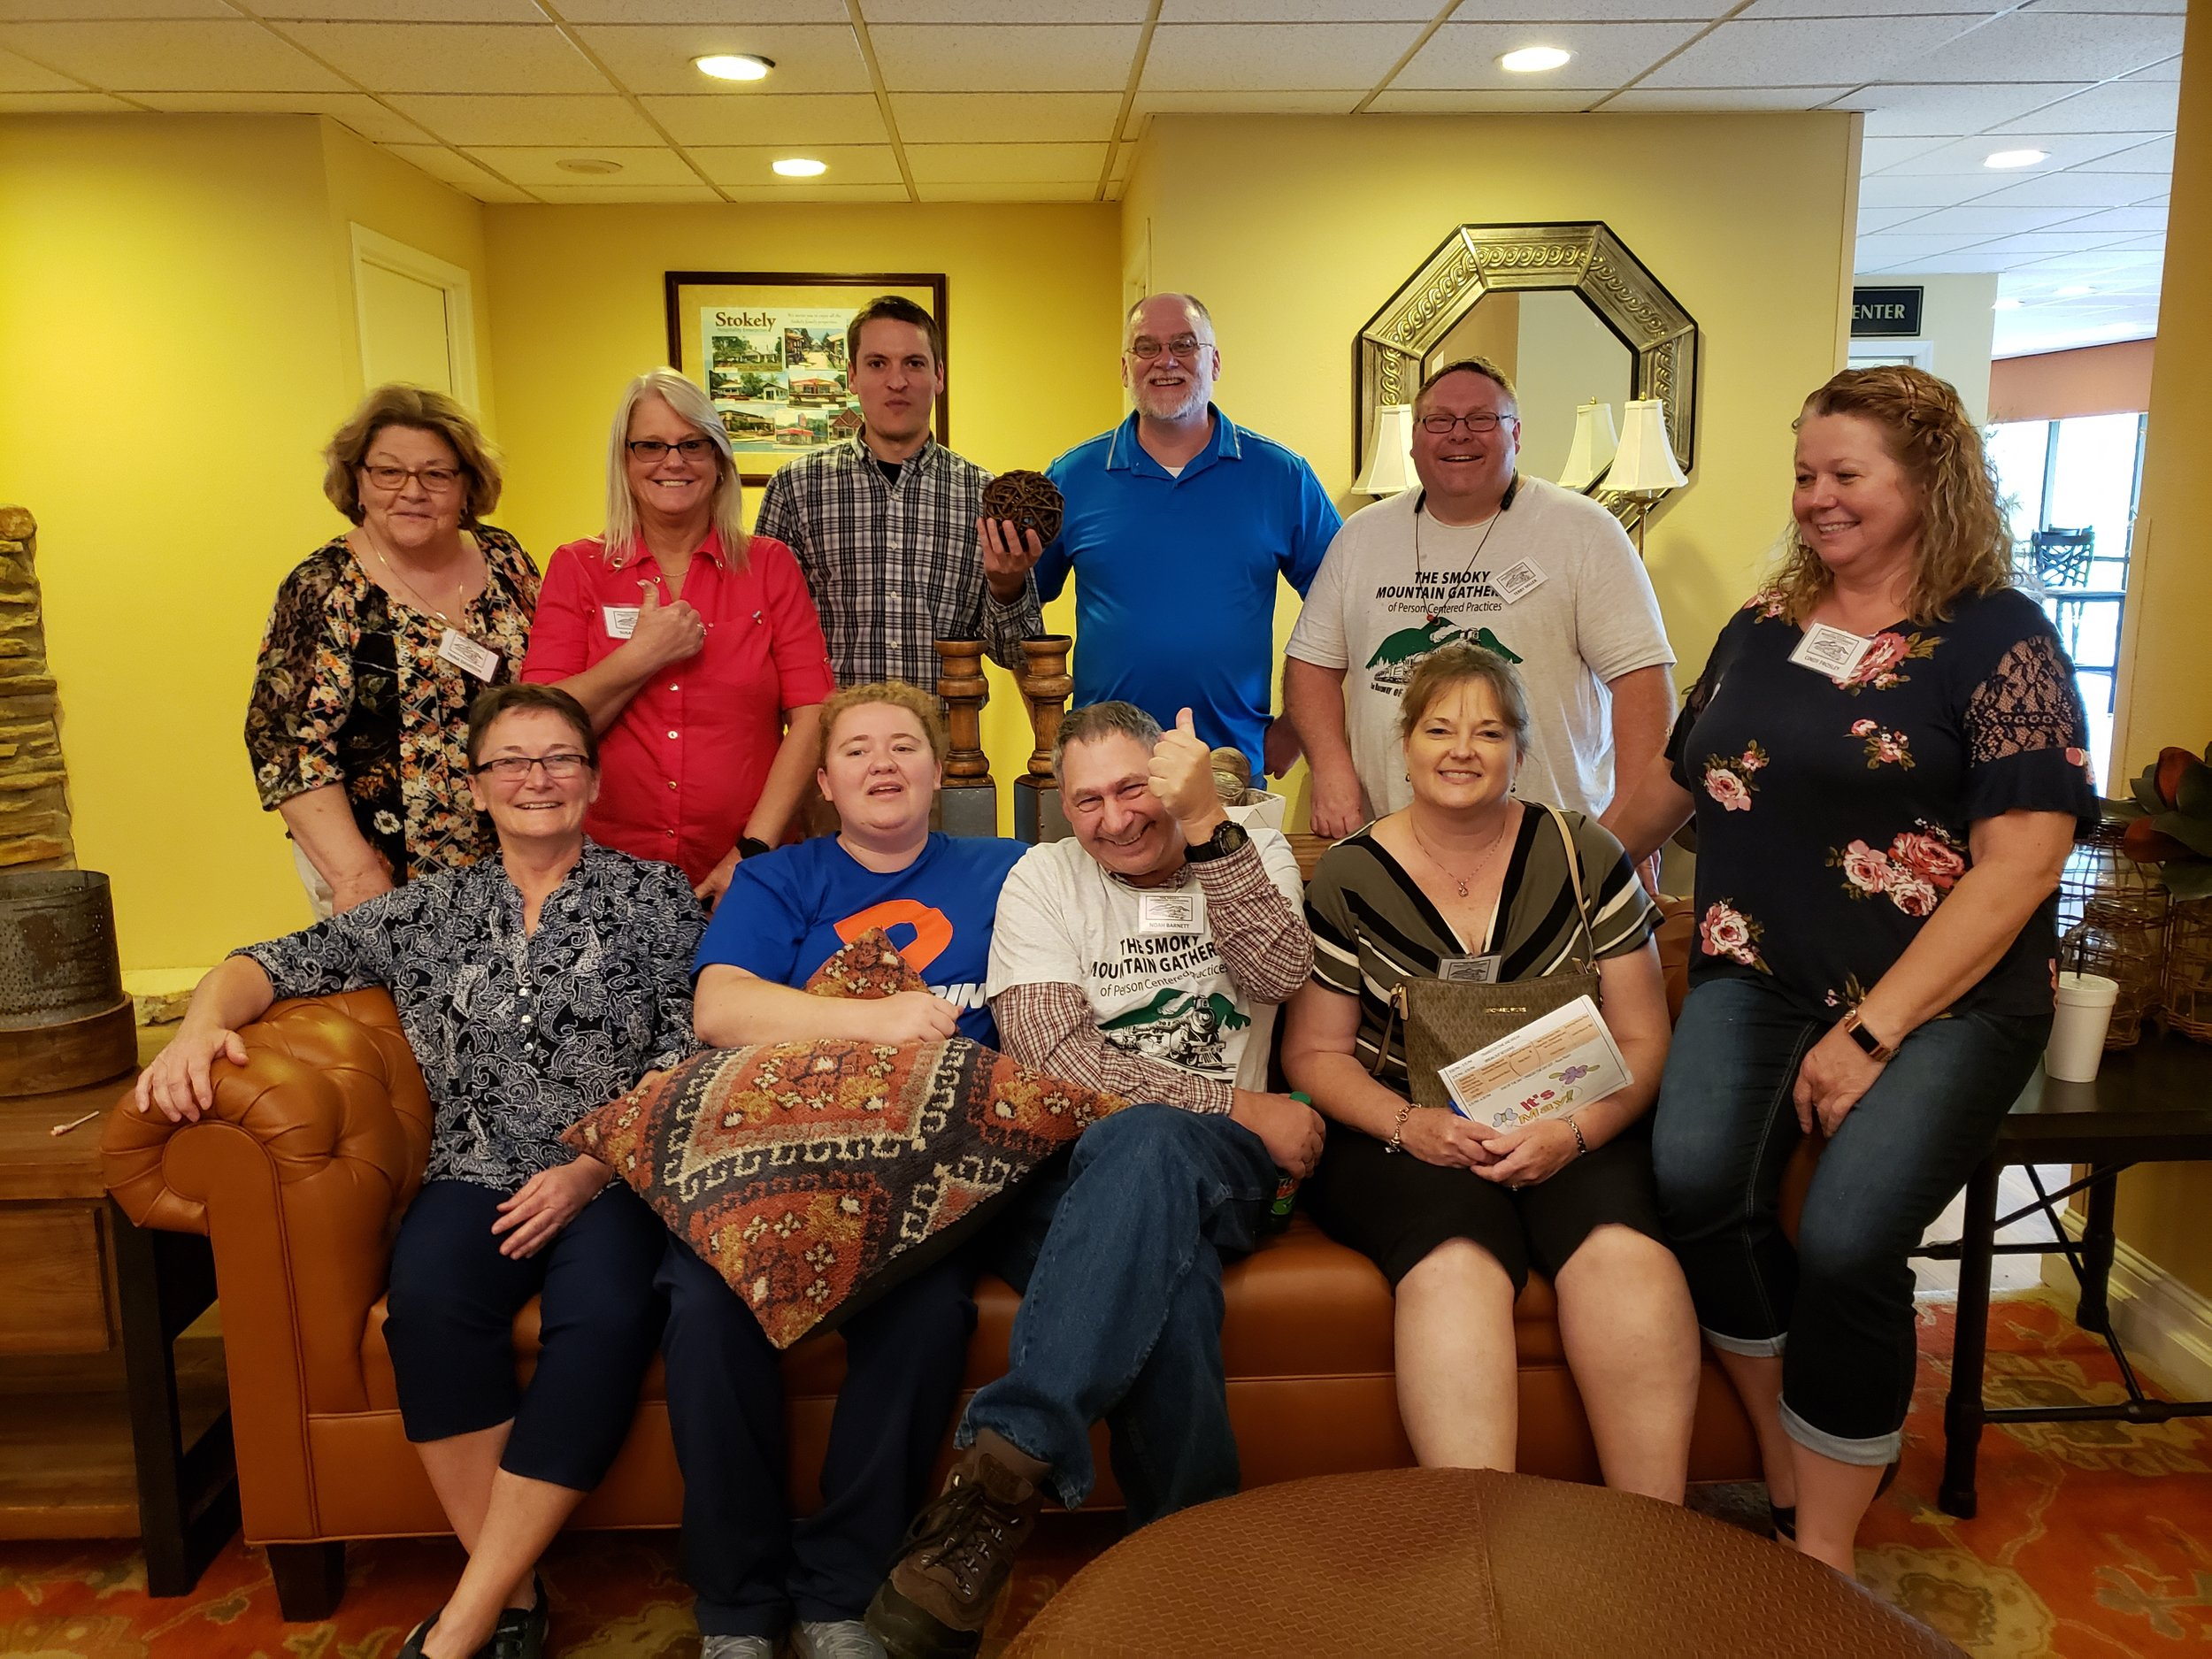 In April we got to connect with some of the team at    Core Services of Northeast Tennessee   , including Executive Director Susan Arwood (front row, left) and Tech Champion Nick Filarelli (back row, third from left). What a wonderful group of people! We look forward to seeing them at future    TN DIDD    events.